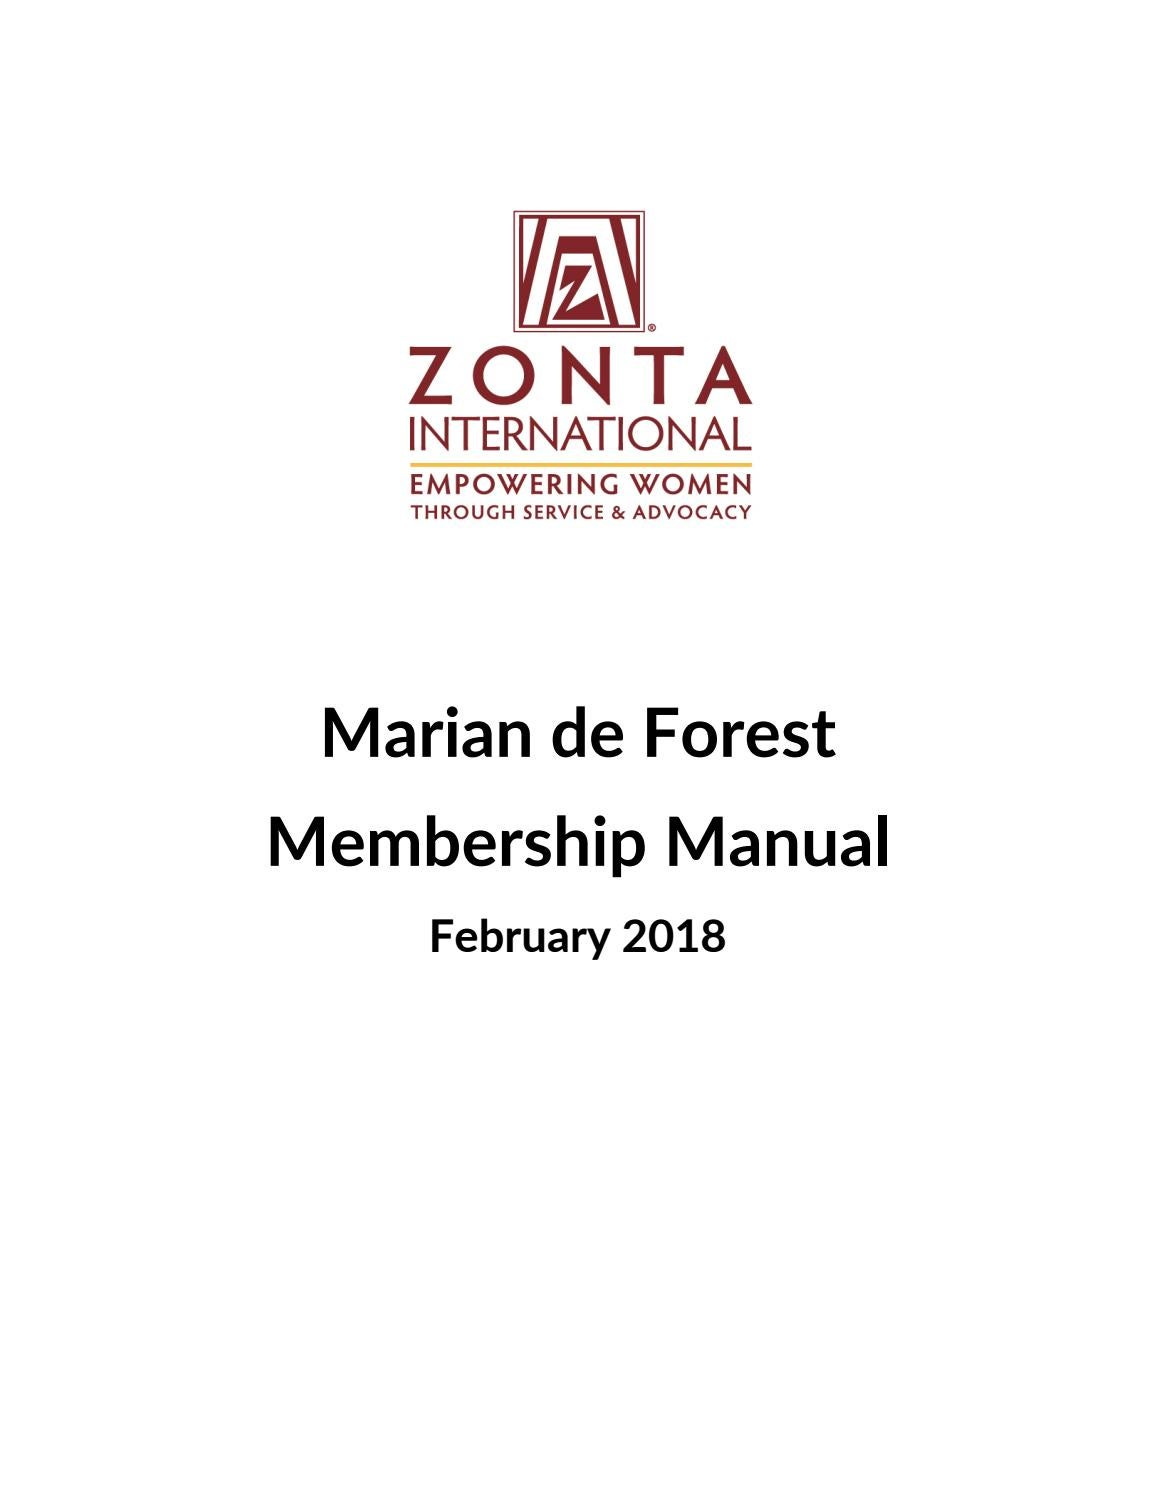 Marian de Forest Membership Manual by Zonta International